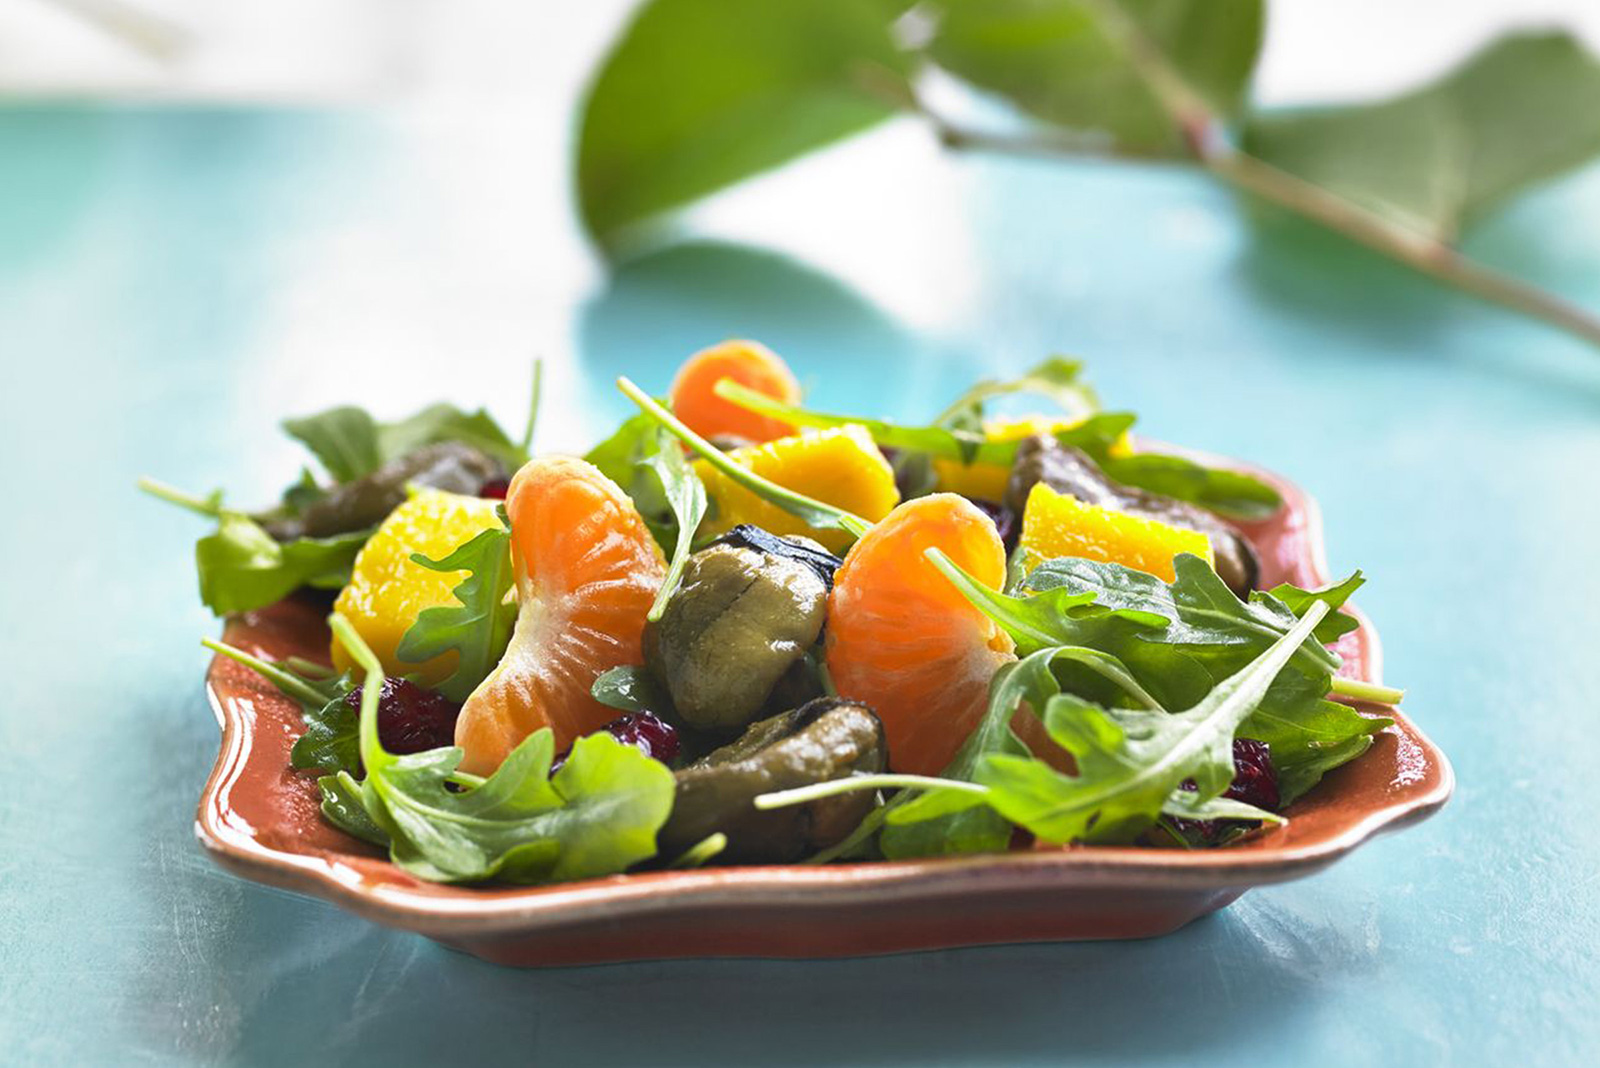 Smoked Mussels, Arugula and Mango Salad